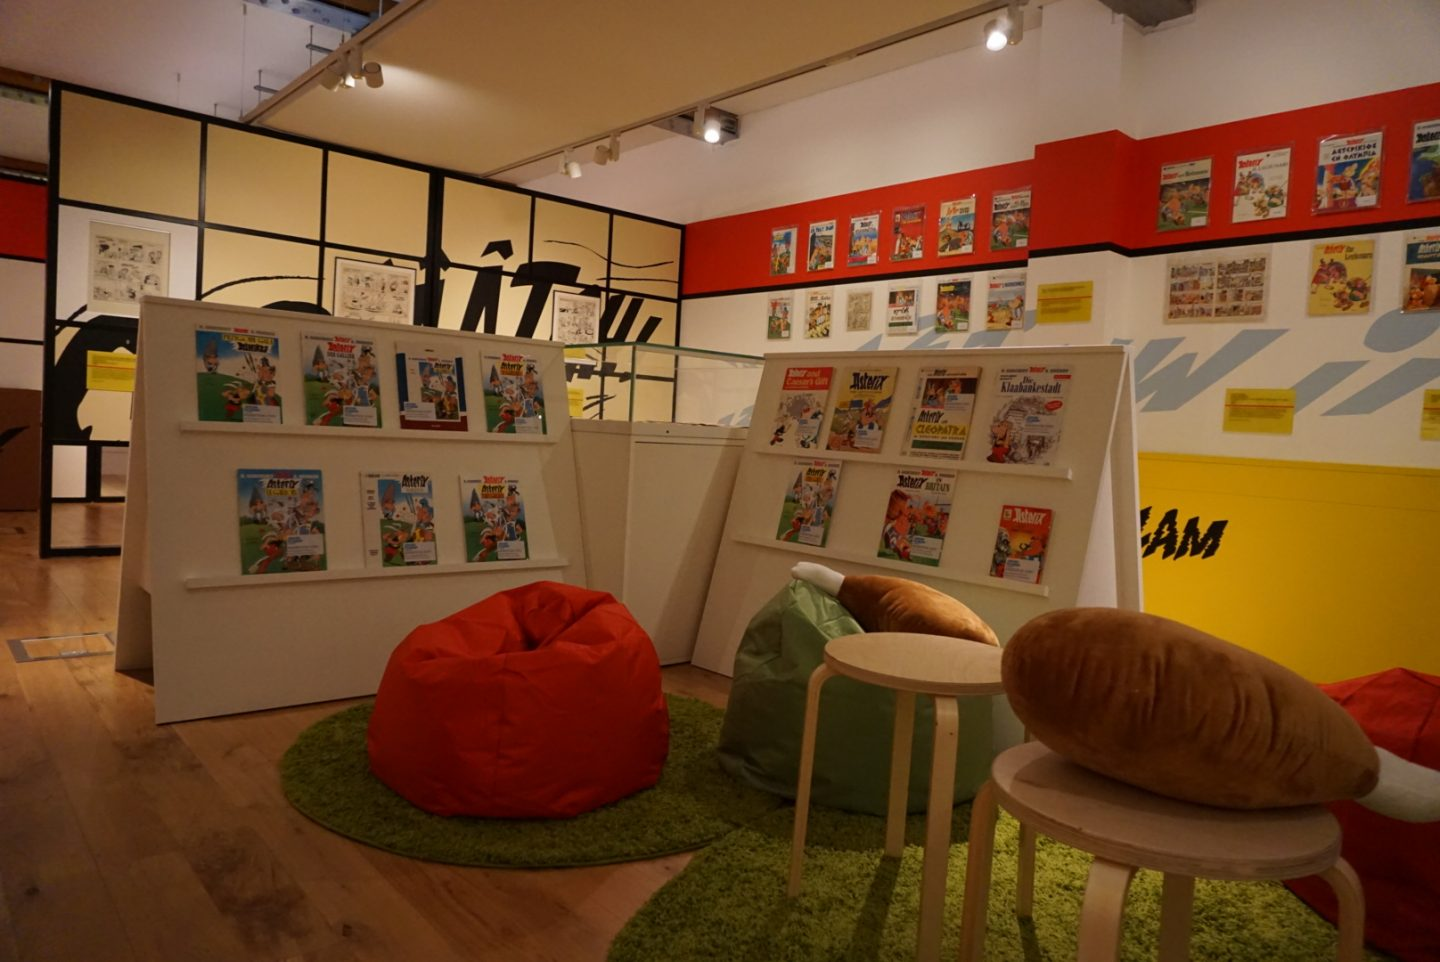 Photograph of family area in the Asterix in Britain exhibition at the Jewish Museum London. You can see bean bags, stools and Asterix comics to read on the shelves